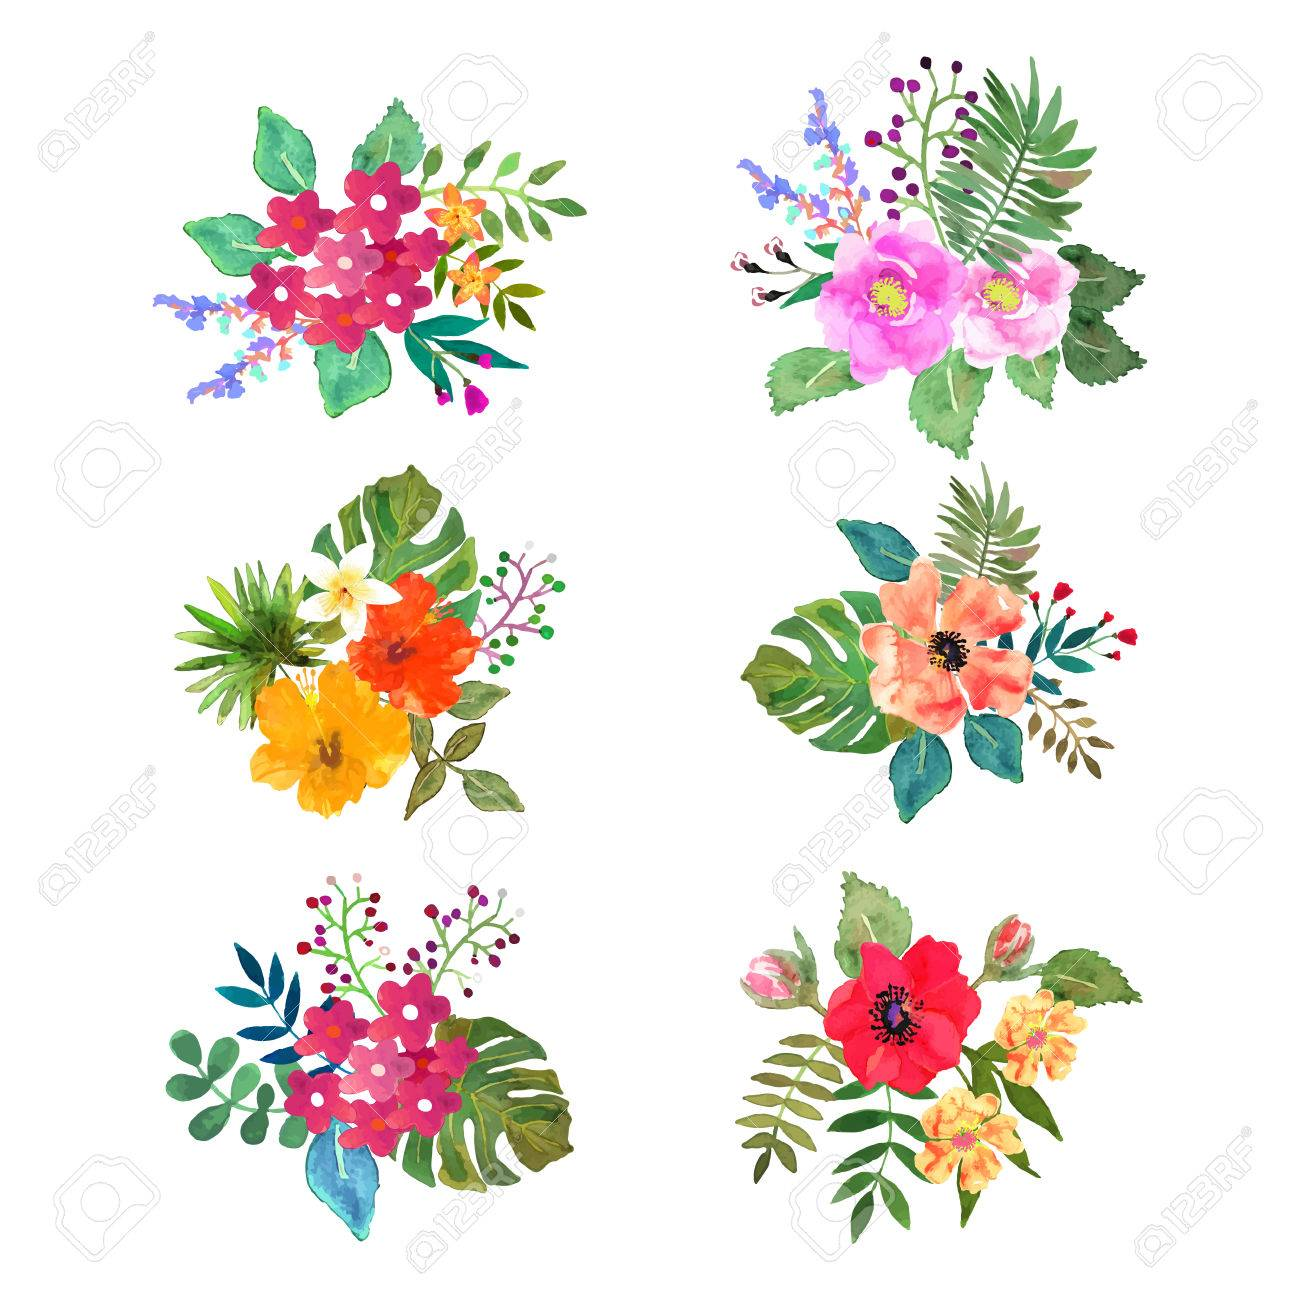 1300x1300 Floral Set. Colorful Floral Collection With Leafs And Flowers